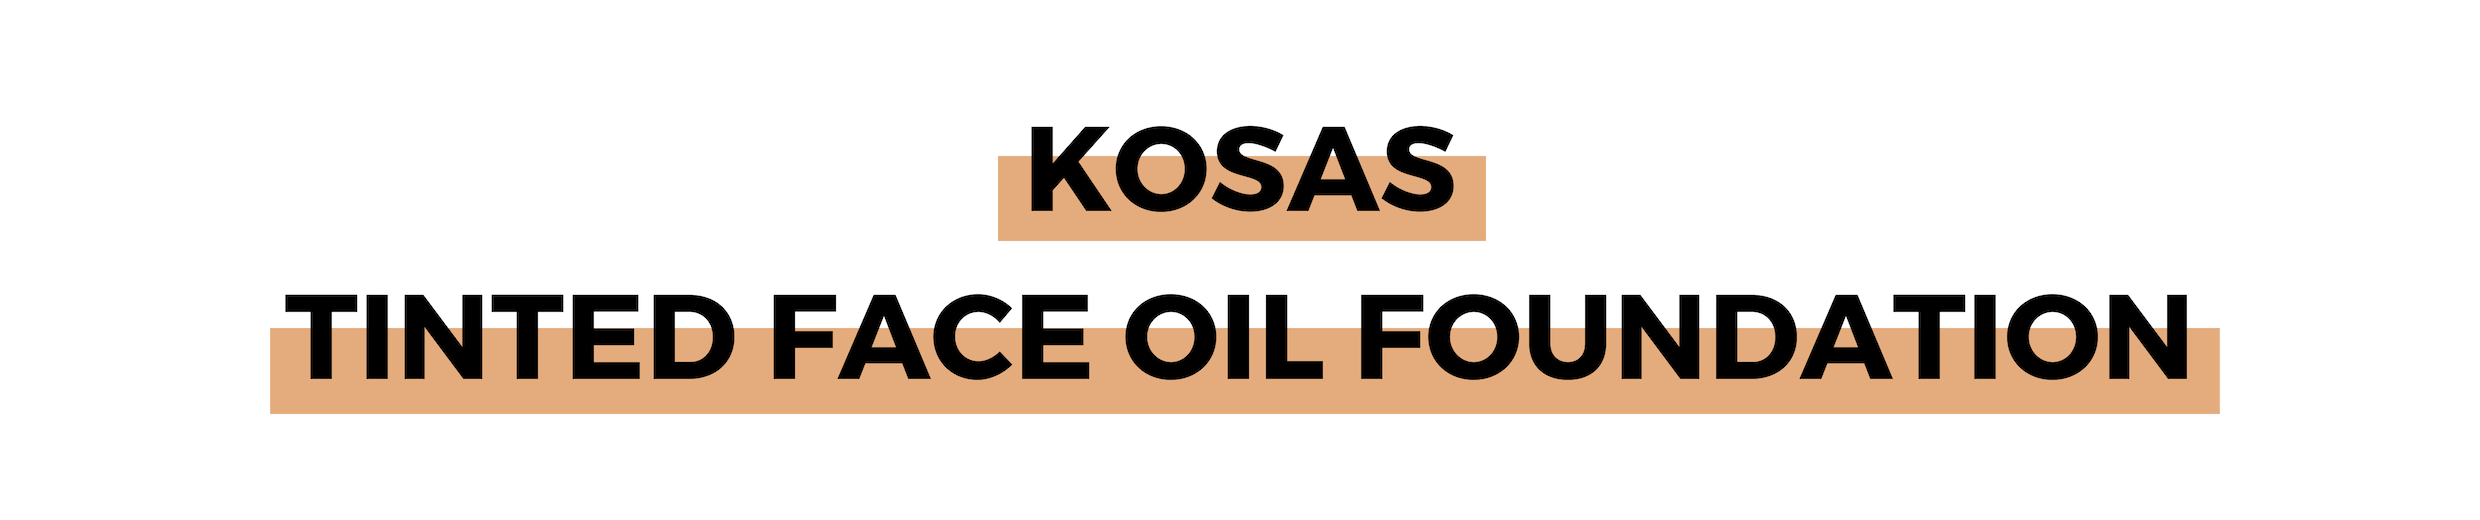 KOSAS TINTED FACE OIL FOUNDATION.png